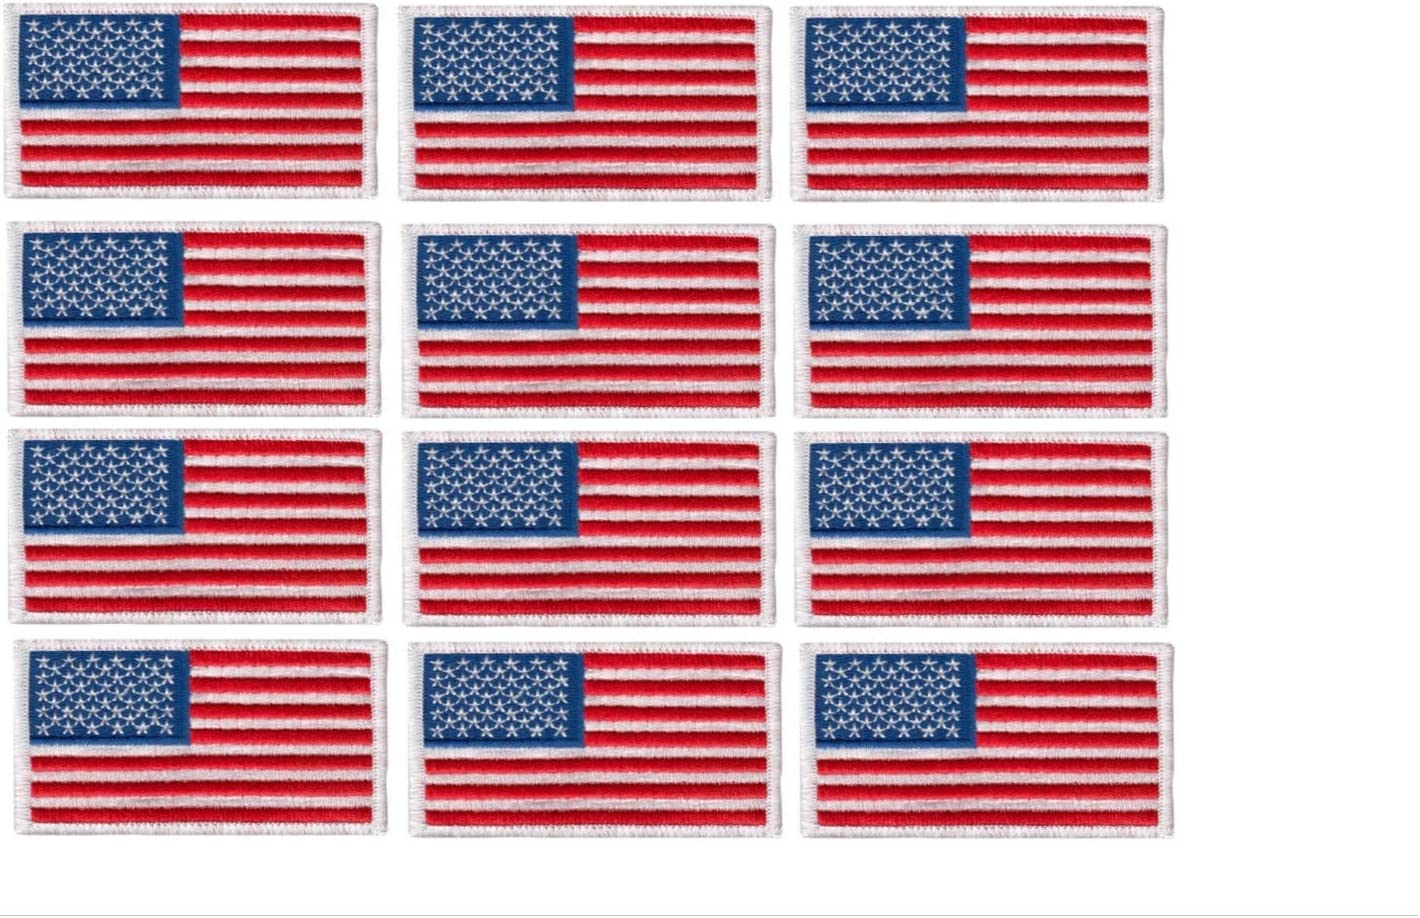 12 Pack - American Flag Embroidered Patch, white border USA United States of America, US flag Patch, sew on